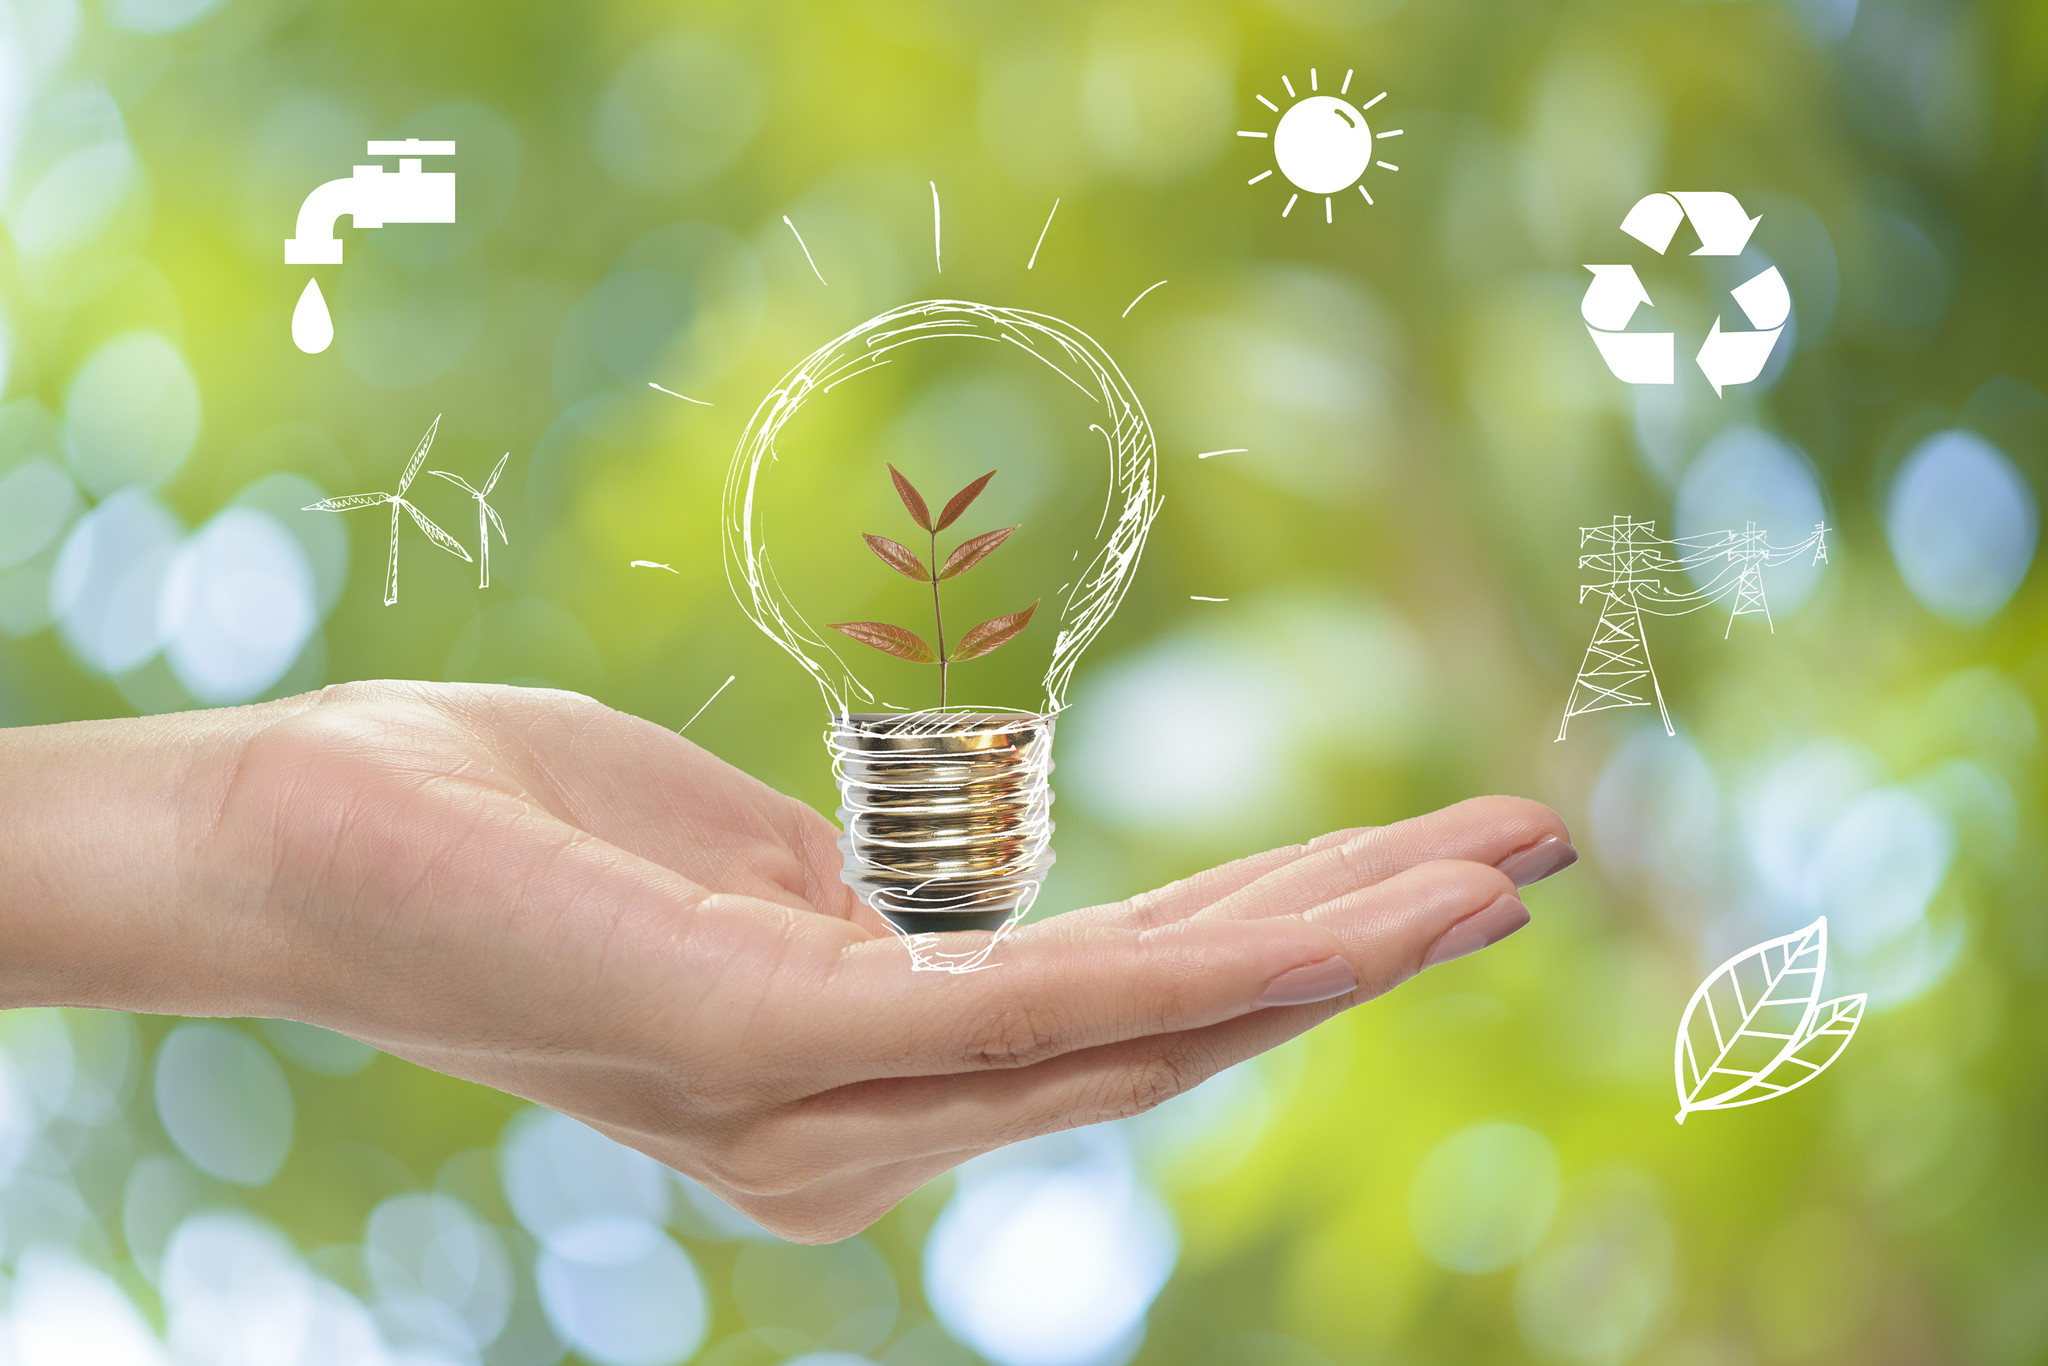 Small steps towards a sustainable world